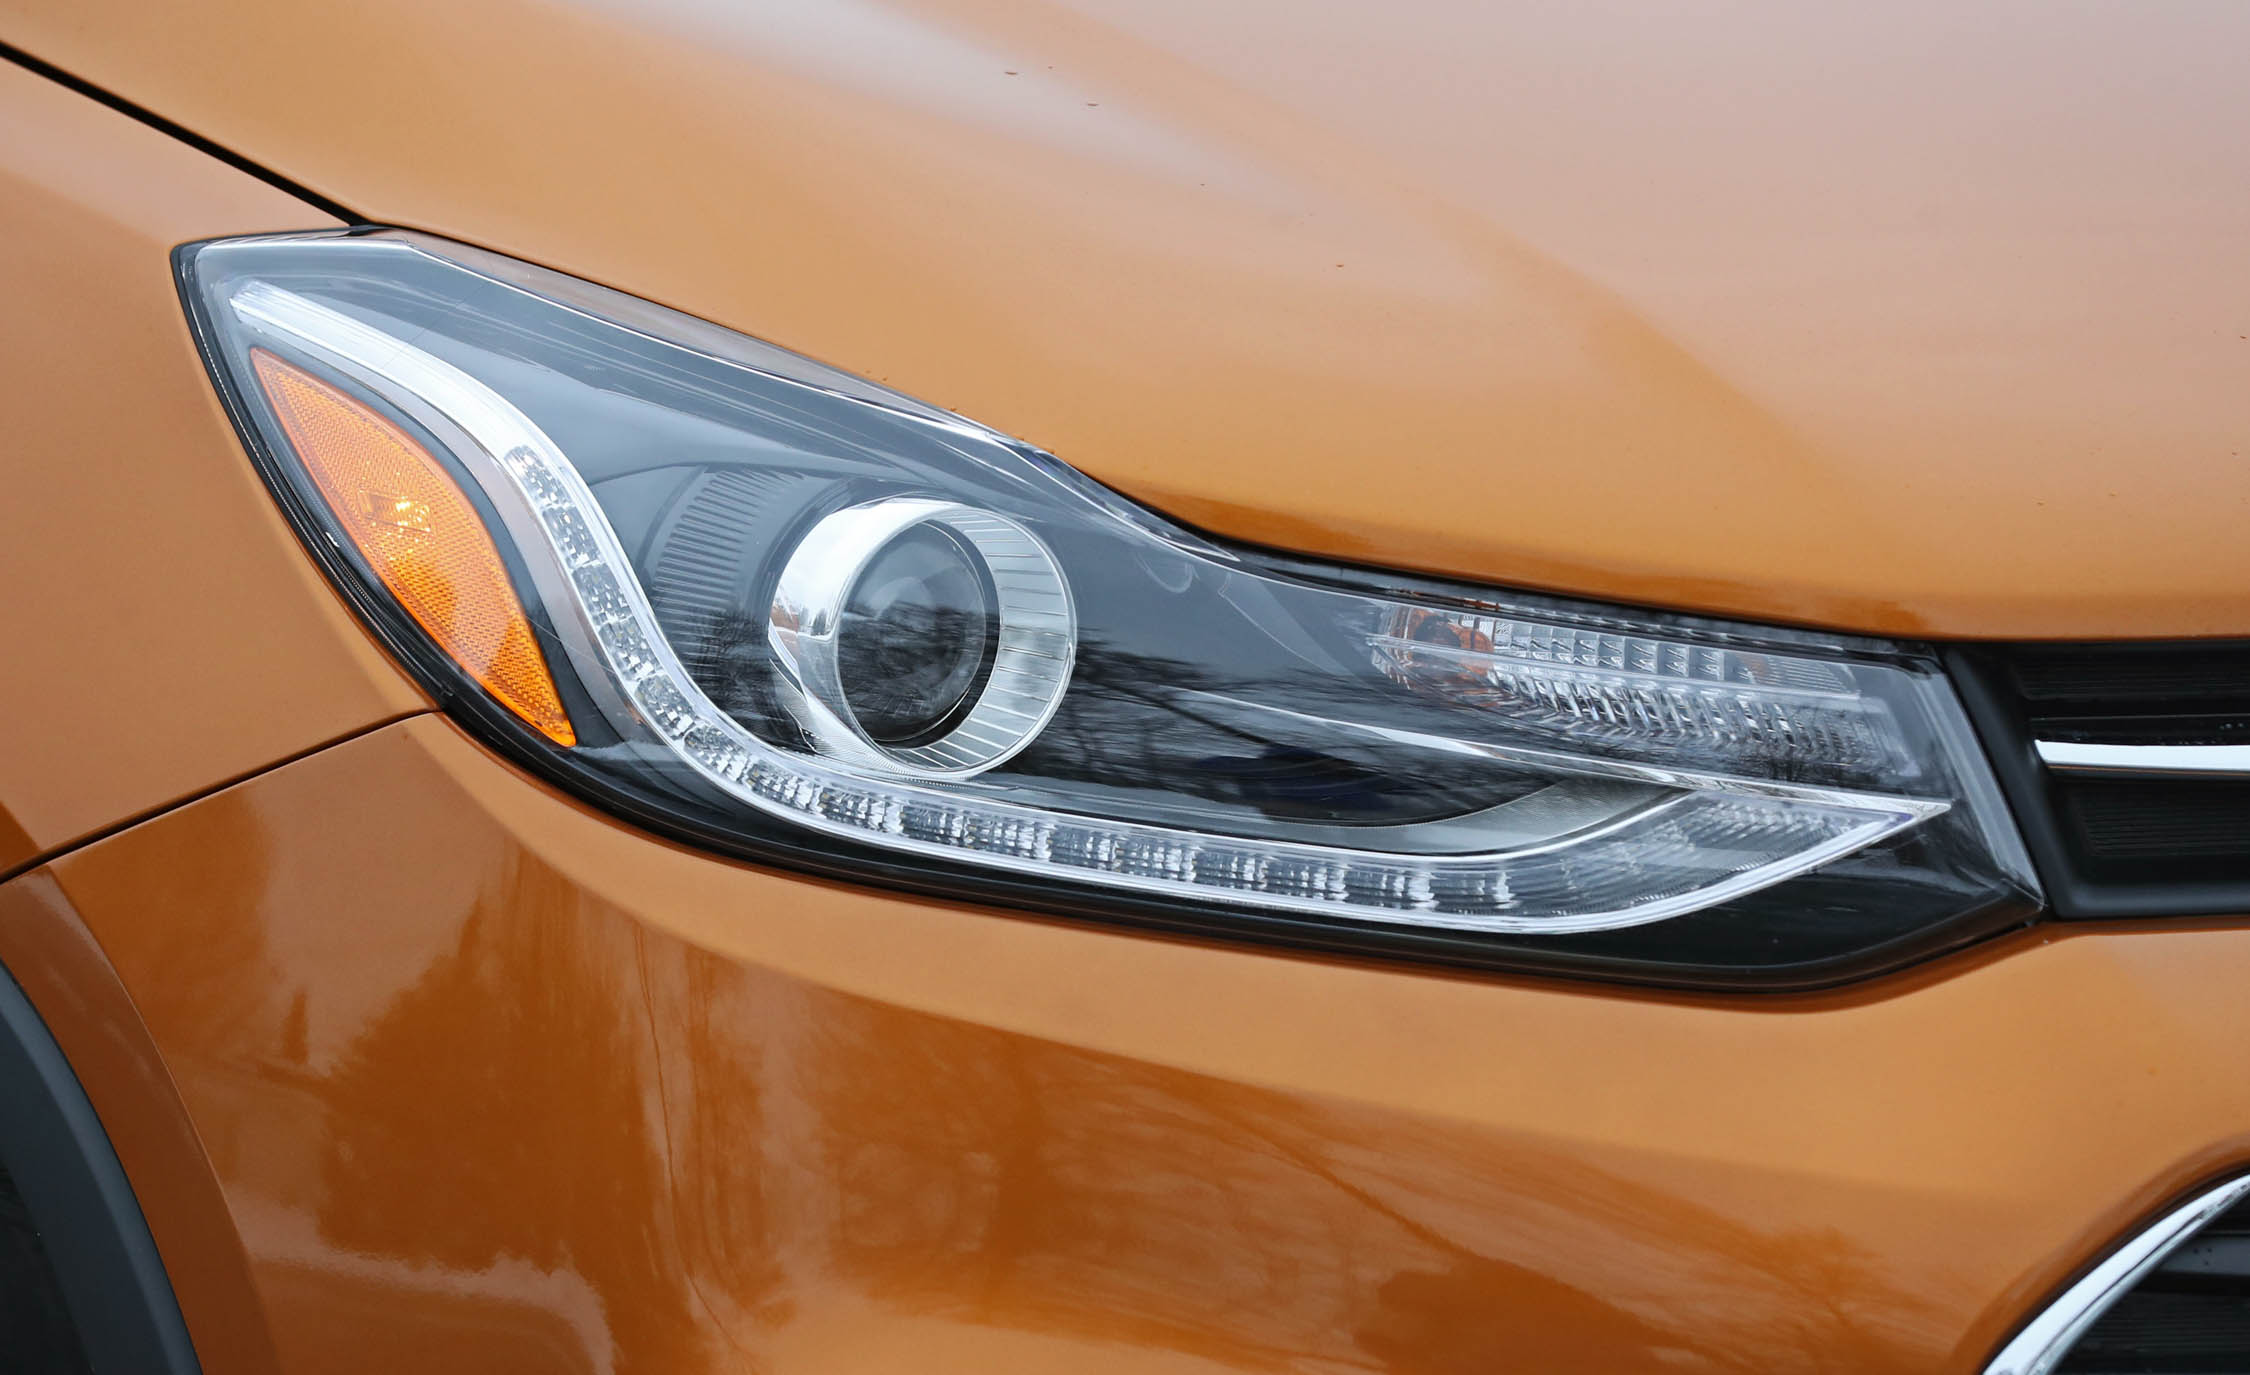 2017 Chevrolet Trax Exterior View Headlamp (View 38 of 47)